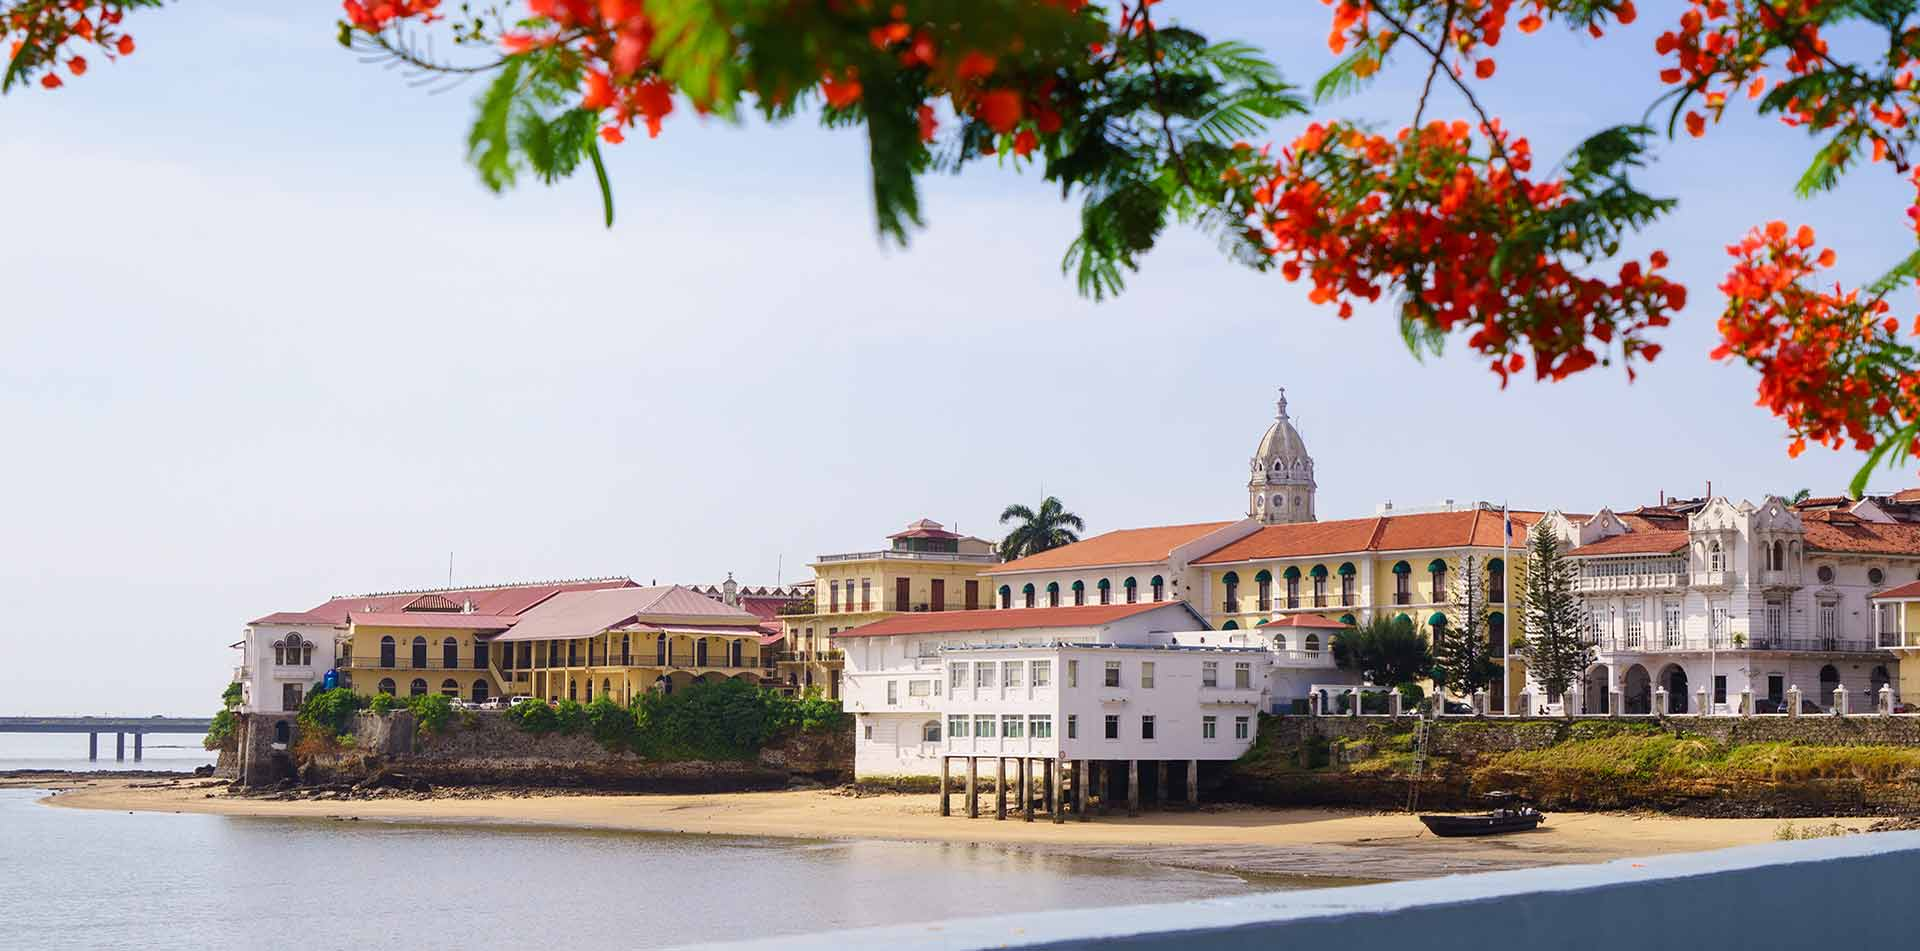 Central America Panama historic buildings along the coast - luxury vacation destinations